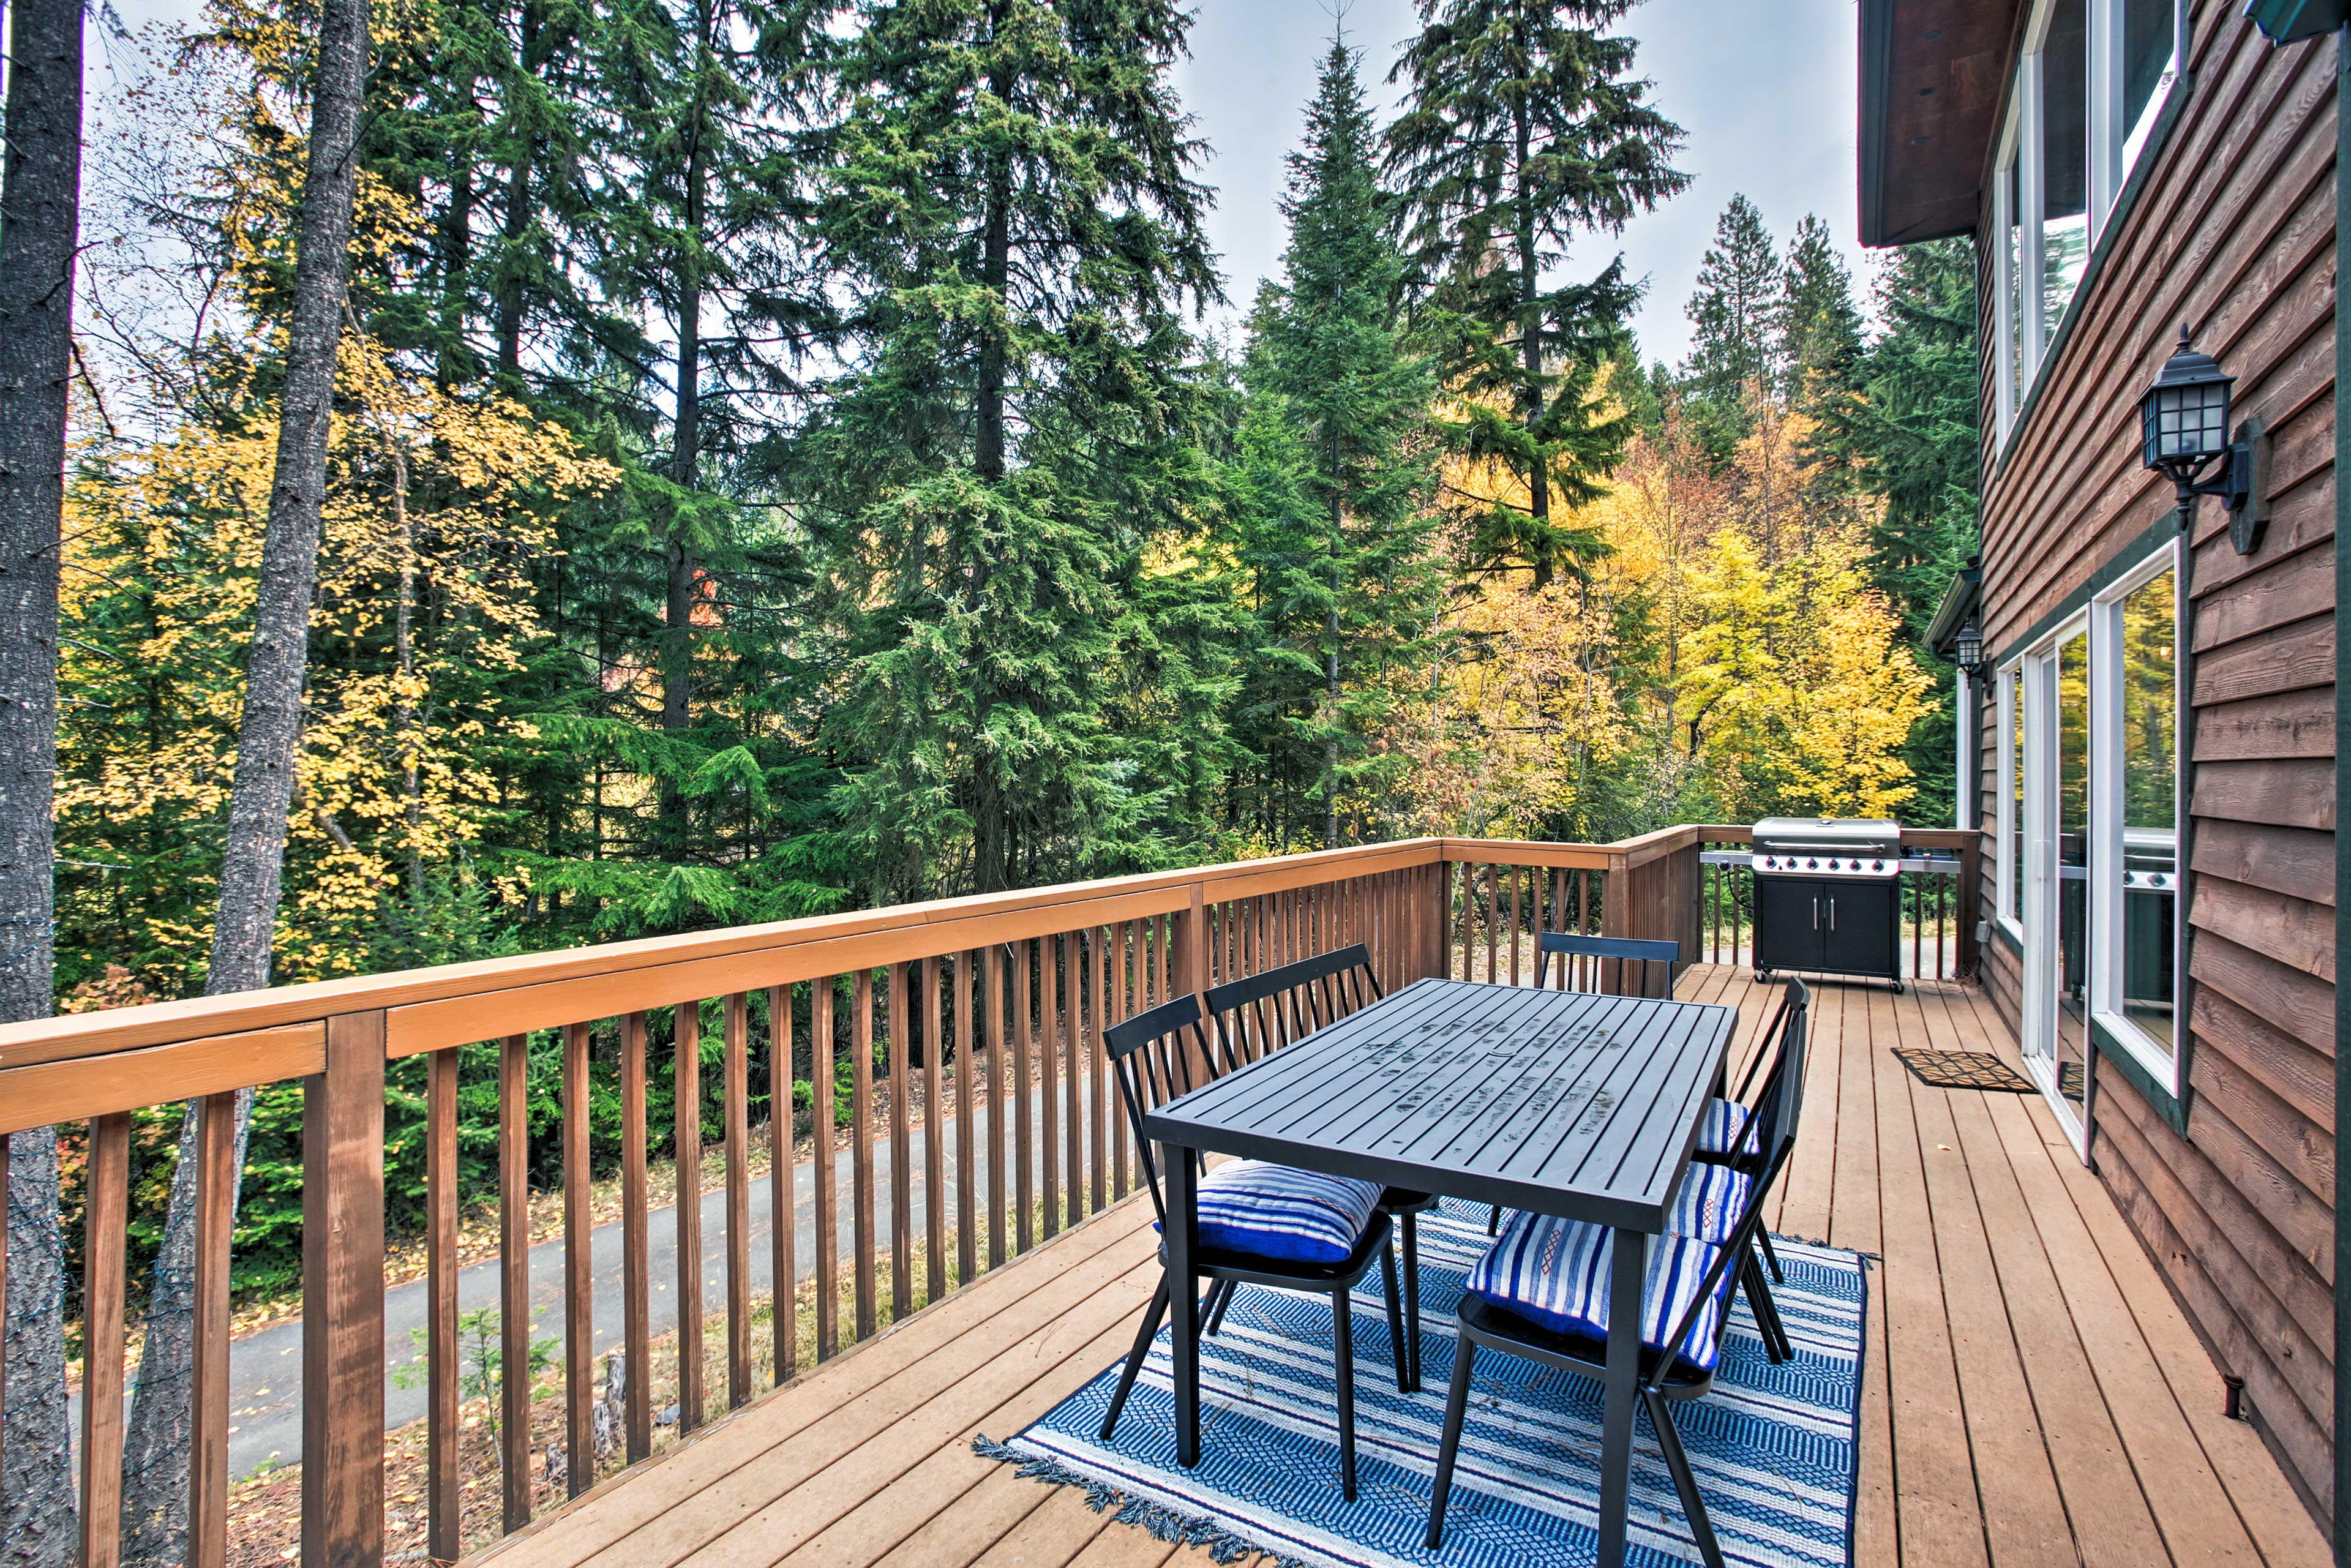 Secluded by trees & 3 minutes from the marina, this home's location is ideal.